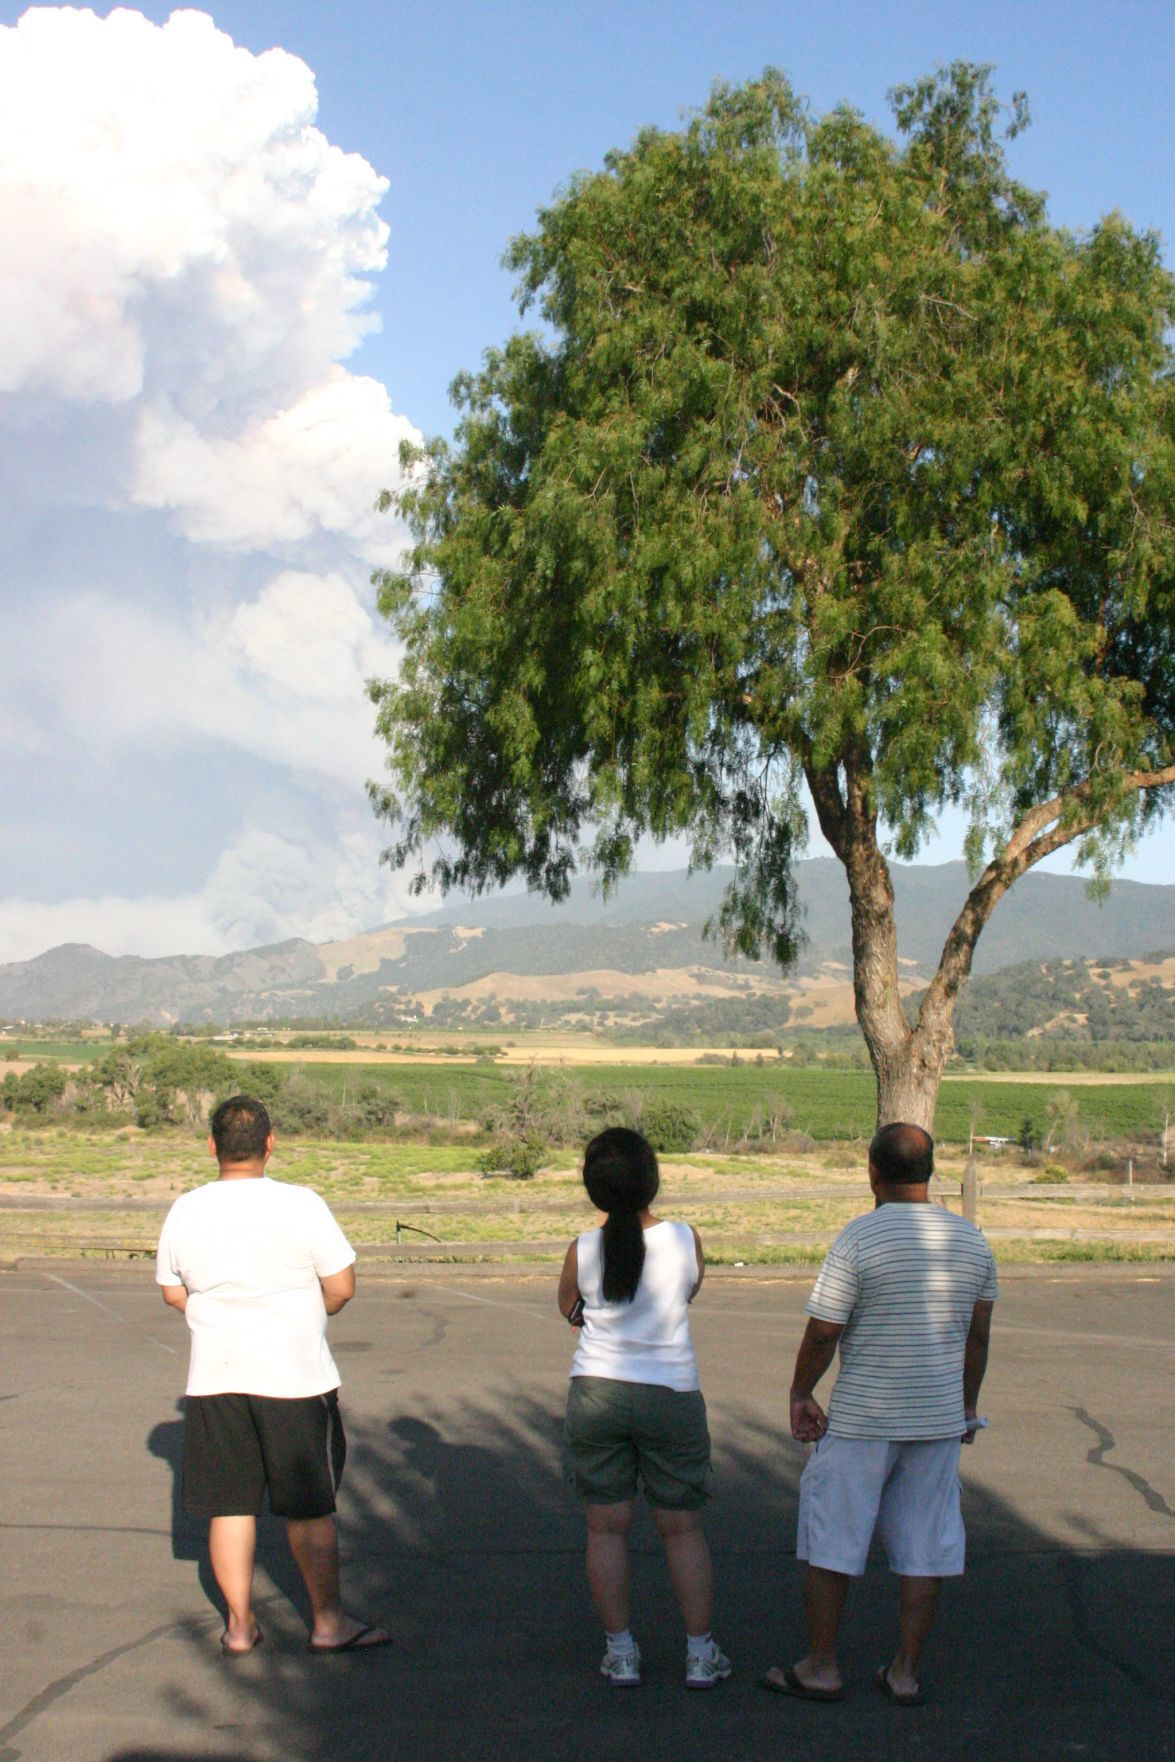 Evacuated campers view smoke from Whittier Fire